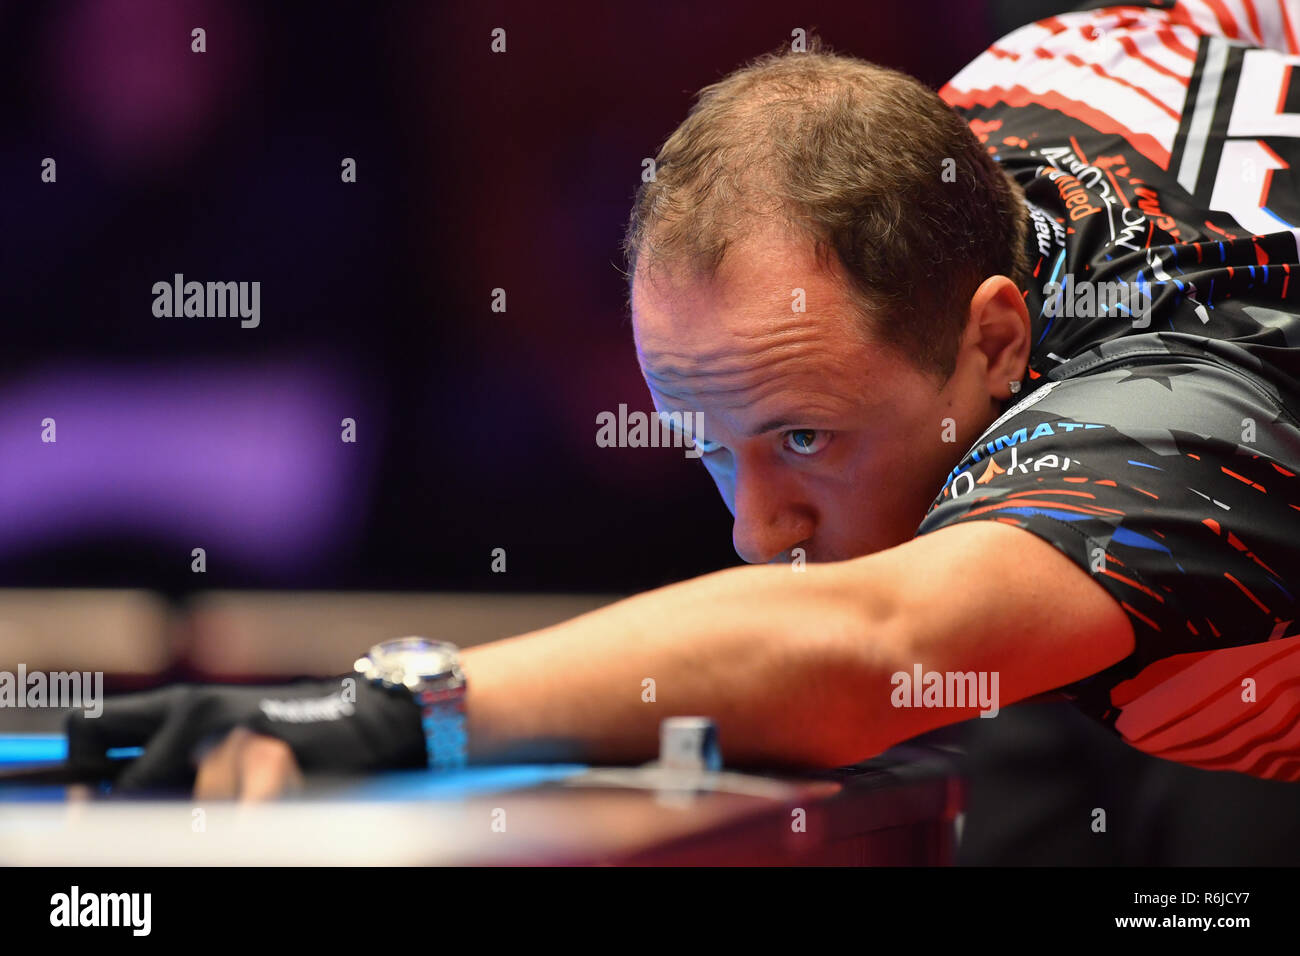 London, UK. 5th Dec, 2018. Skyler Woodward of USA/Shane van Boening of USA during The Partypoker Mosconi Cup 2018: on Day 2 event - Niels Feijen/Alex Kazakis (EUR) v Skyler Woodward/Shane van Boening at Alexandra Palace on Wednesday, 05 December 2018. LONDON, ENGLAND. (Editorial use only, license required for commercial use. No use in betting, games or a single club/league/player publications.) Credit: Taka Wu/Alamy Live News - Stock Image